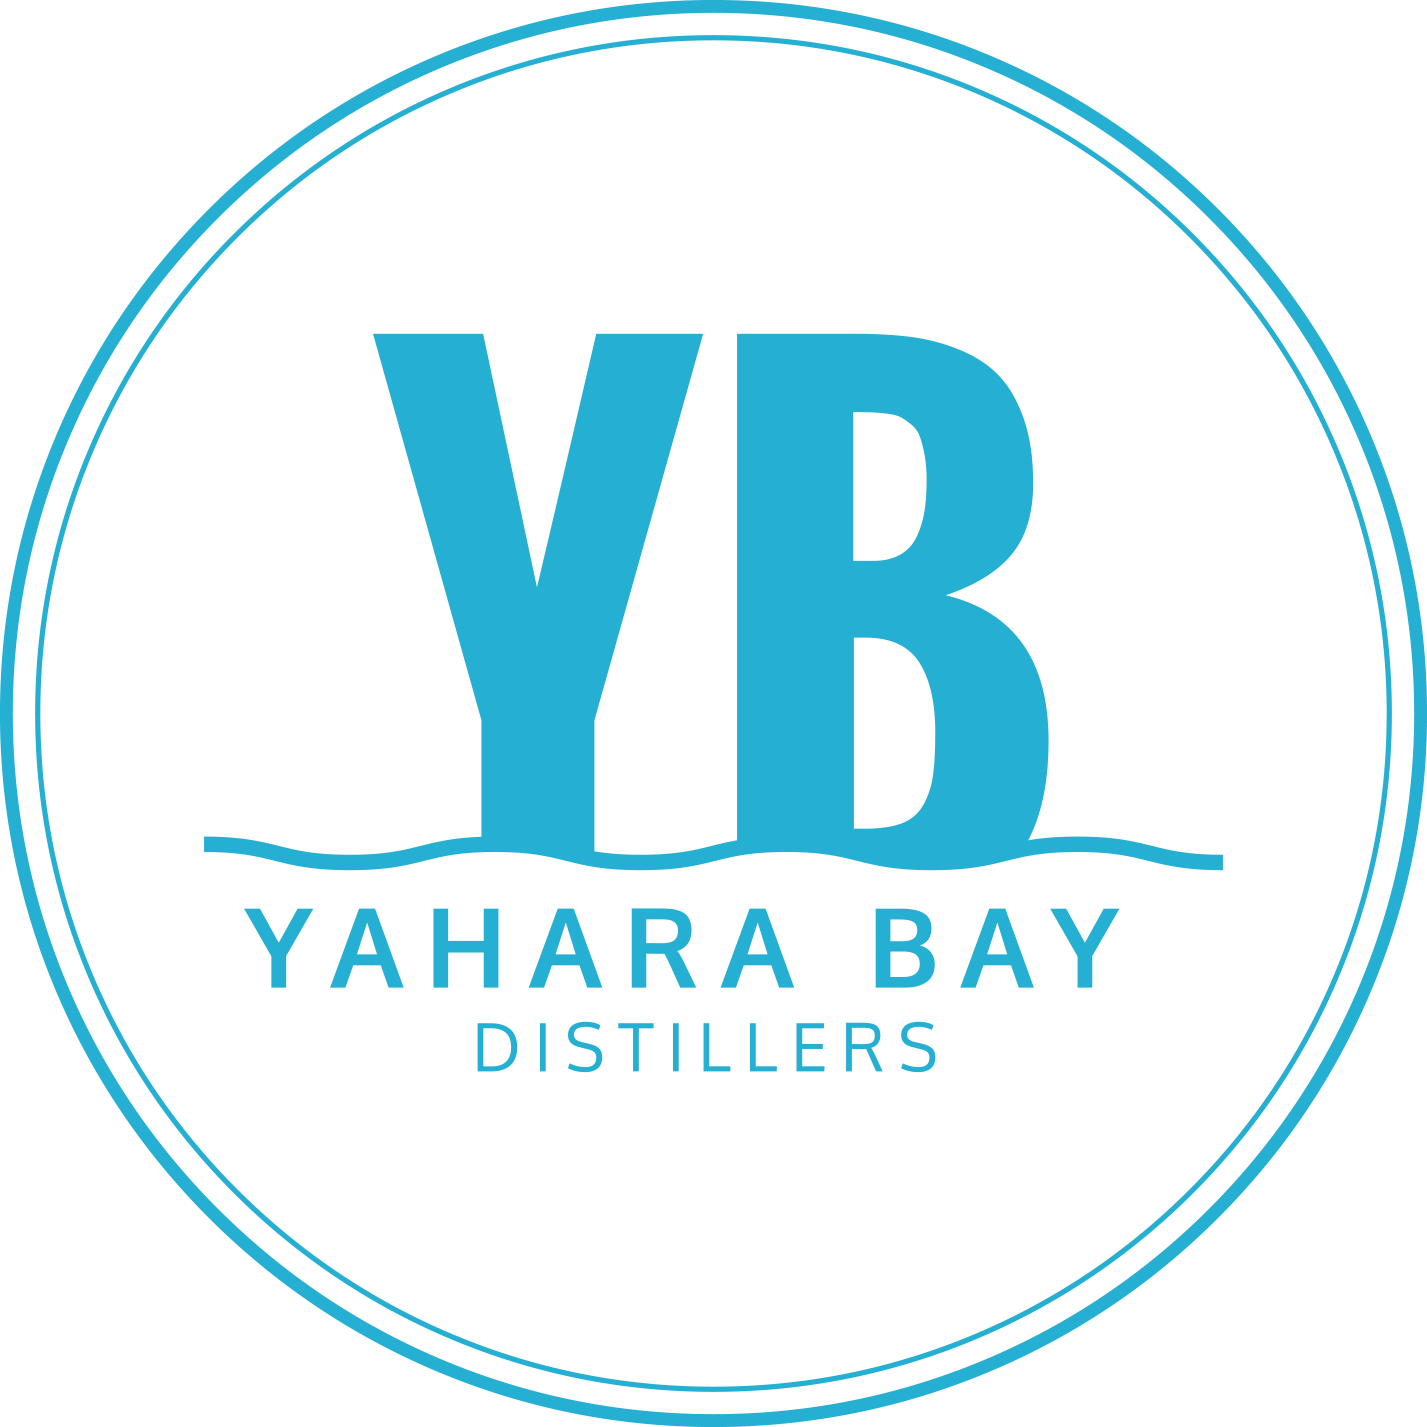 Copy of Yahara-Bay-Distillers-logo-blue.png